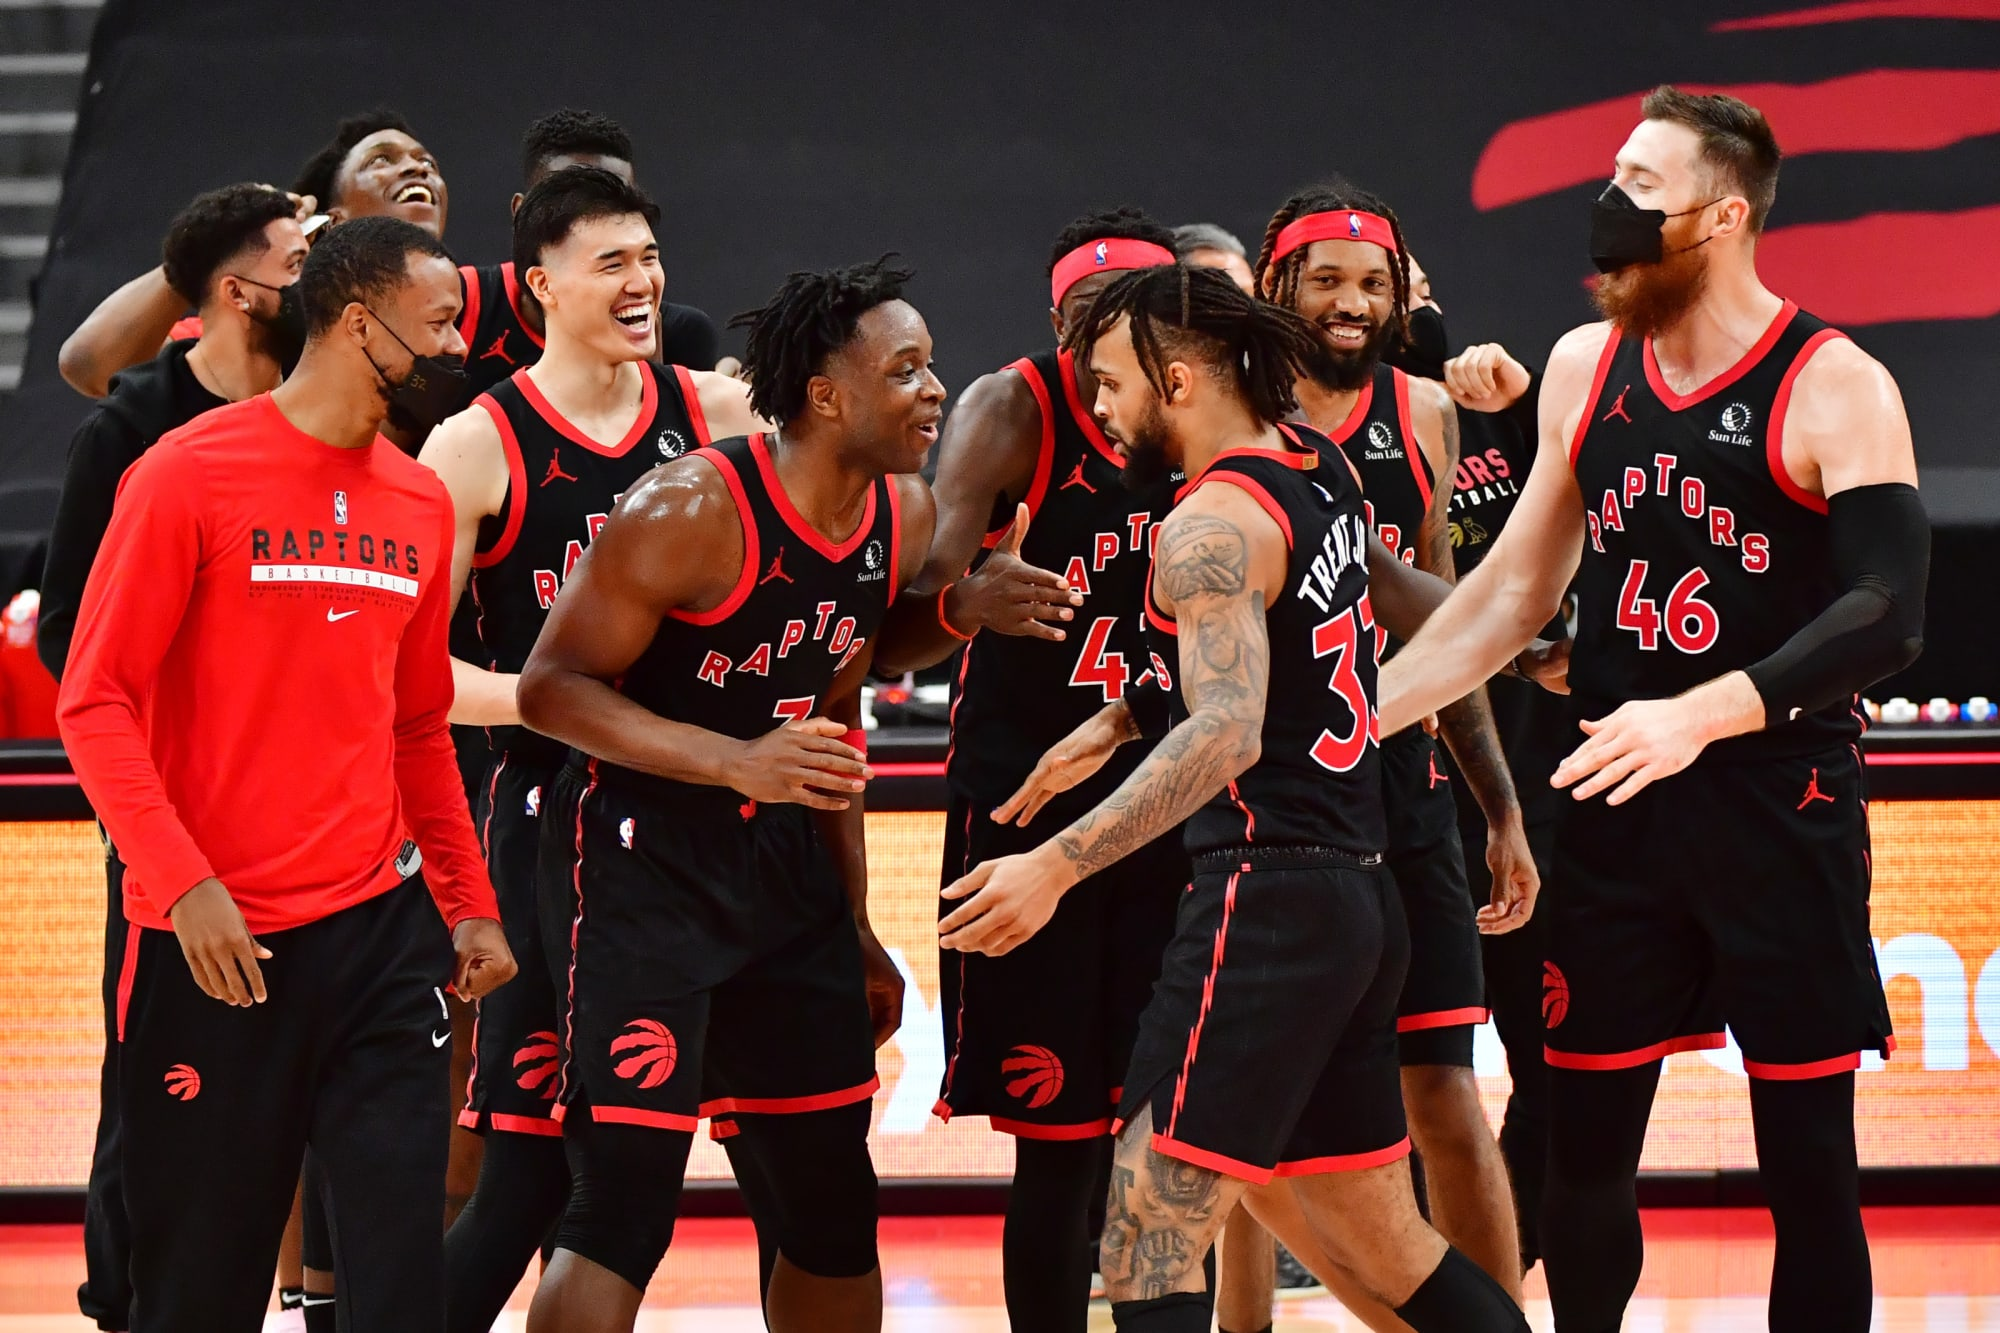 Toronto Raptors: Twitter reaction to buzzer-beater from Gary Trent Jr. proves fanbase loves him